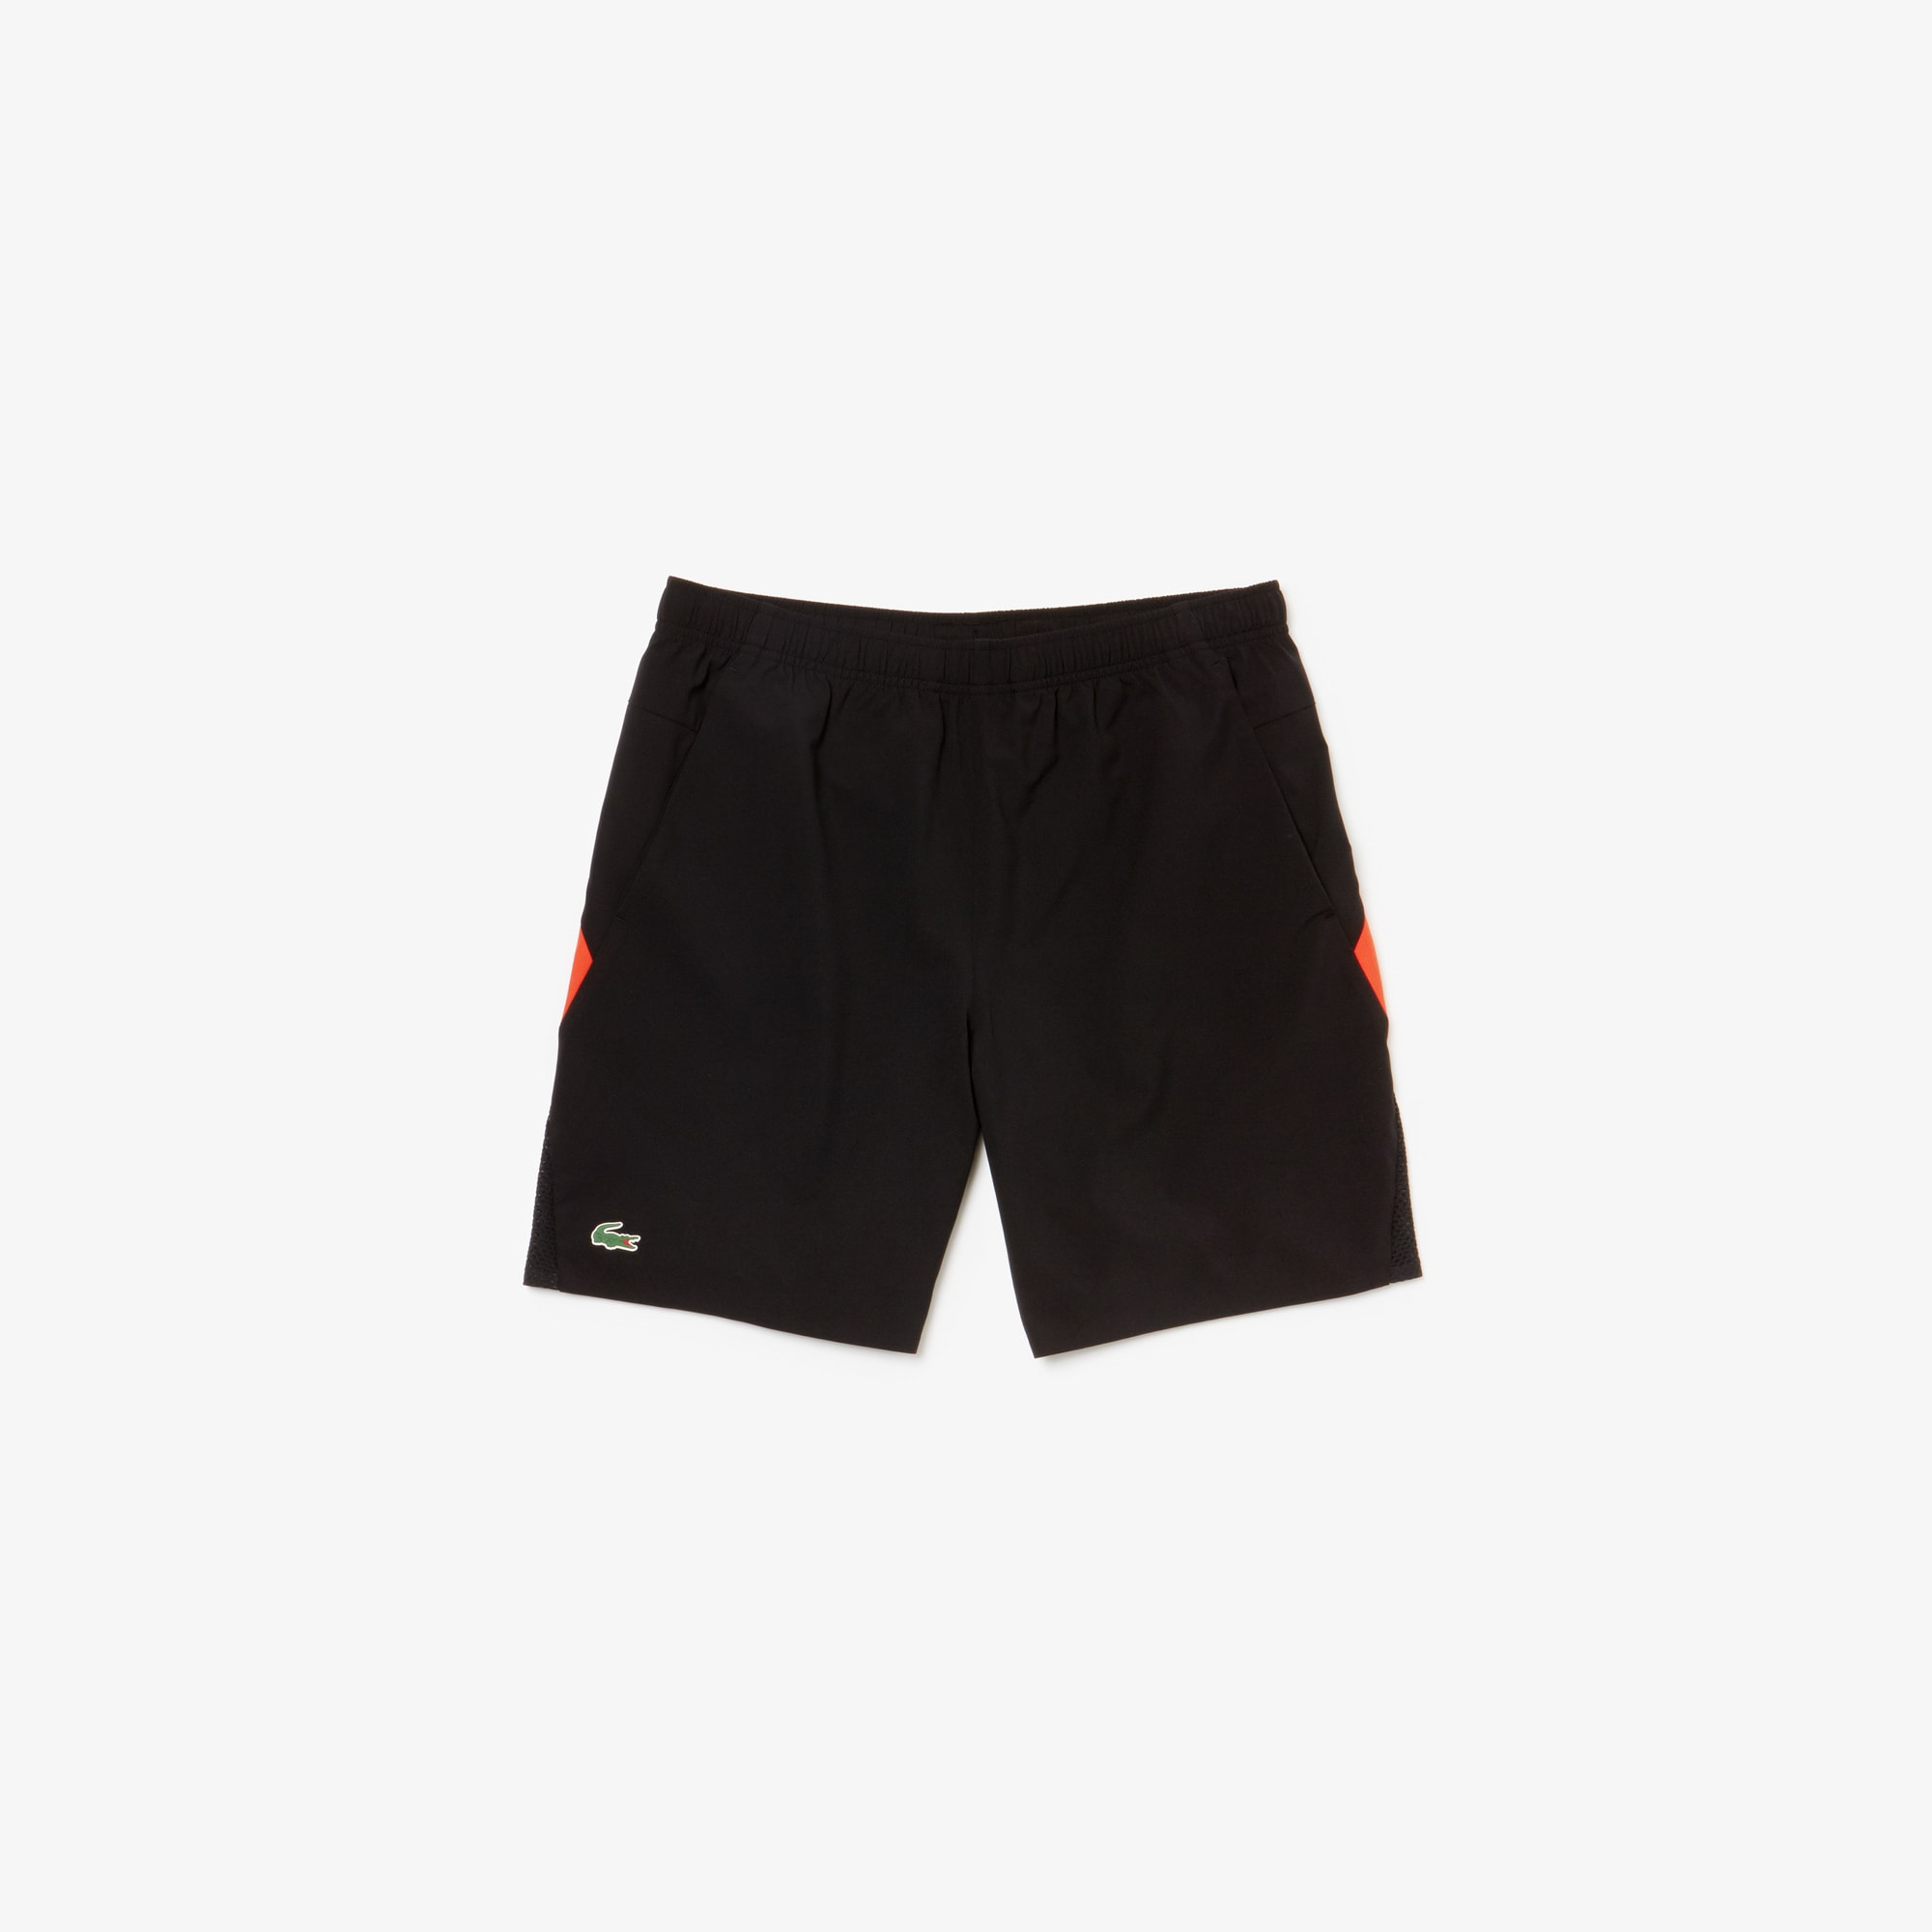 Men's Lacoste SPORT Novak Djokovic Collection Ultra Light Shorts